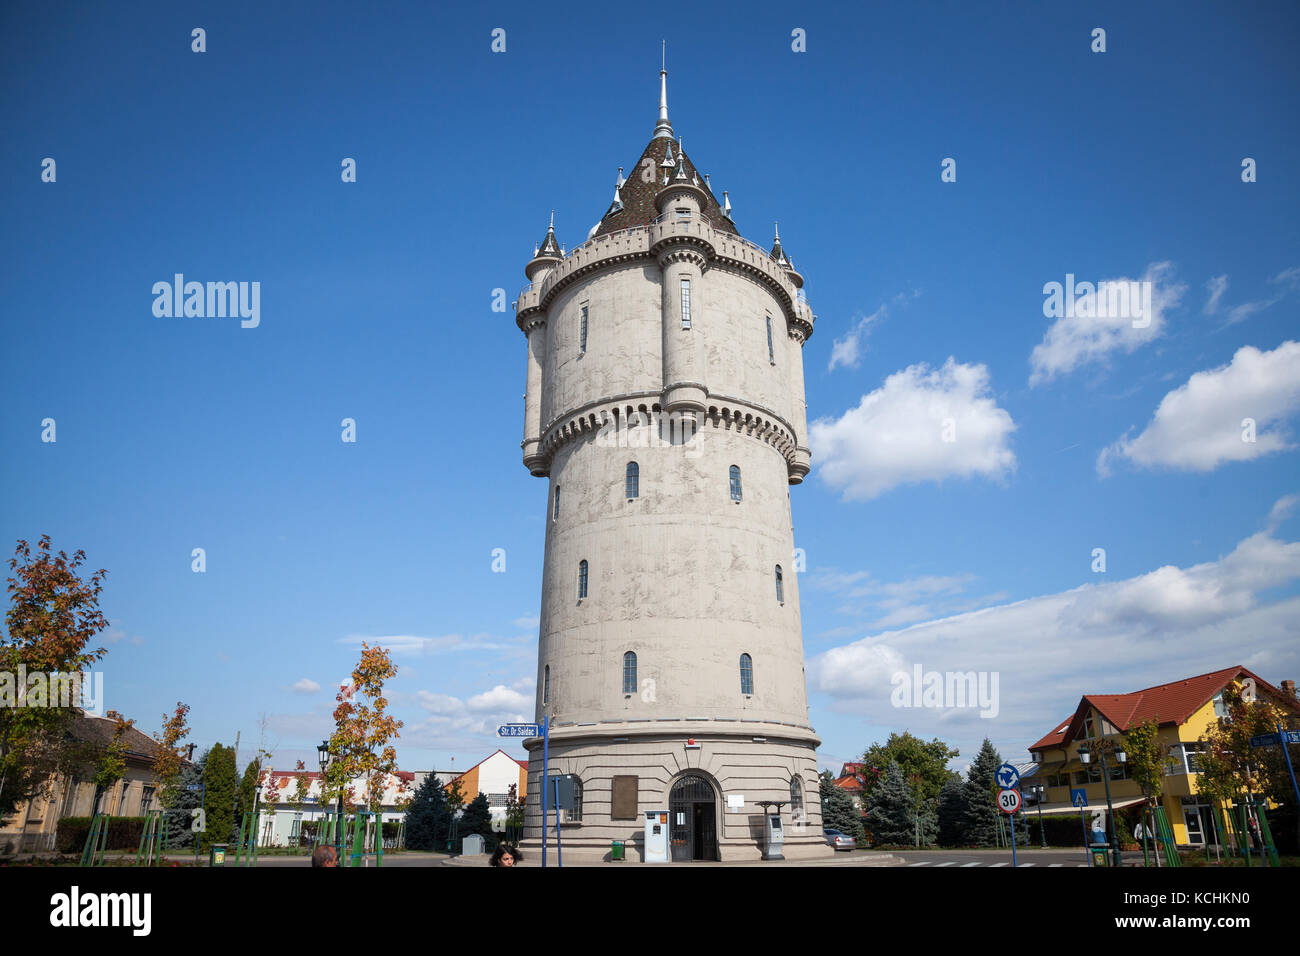 DROBETA TURNU SEVERIN, ROMANIA - SEPTEMBER 24, 2017: Turnu Severin Water Tower (Castelul de Apa), one of the landmark - Stock Image